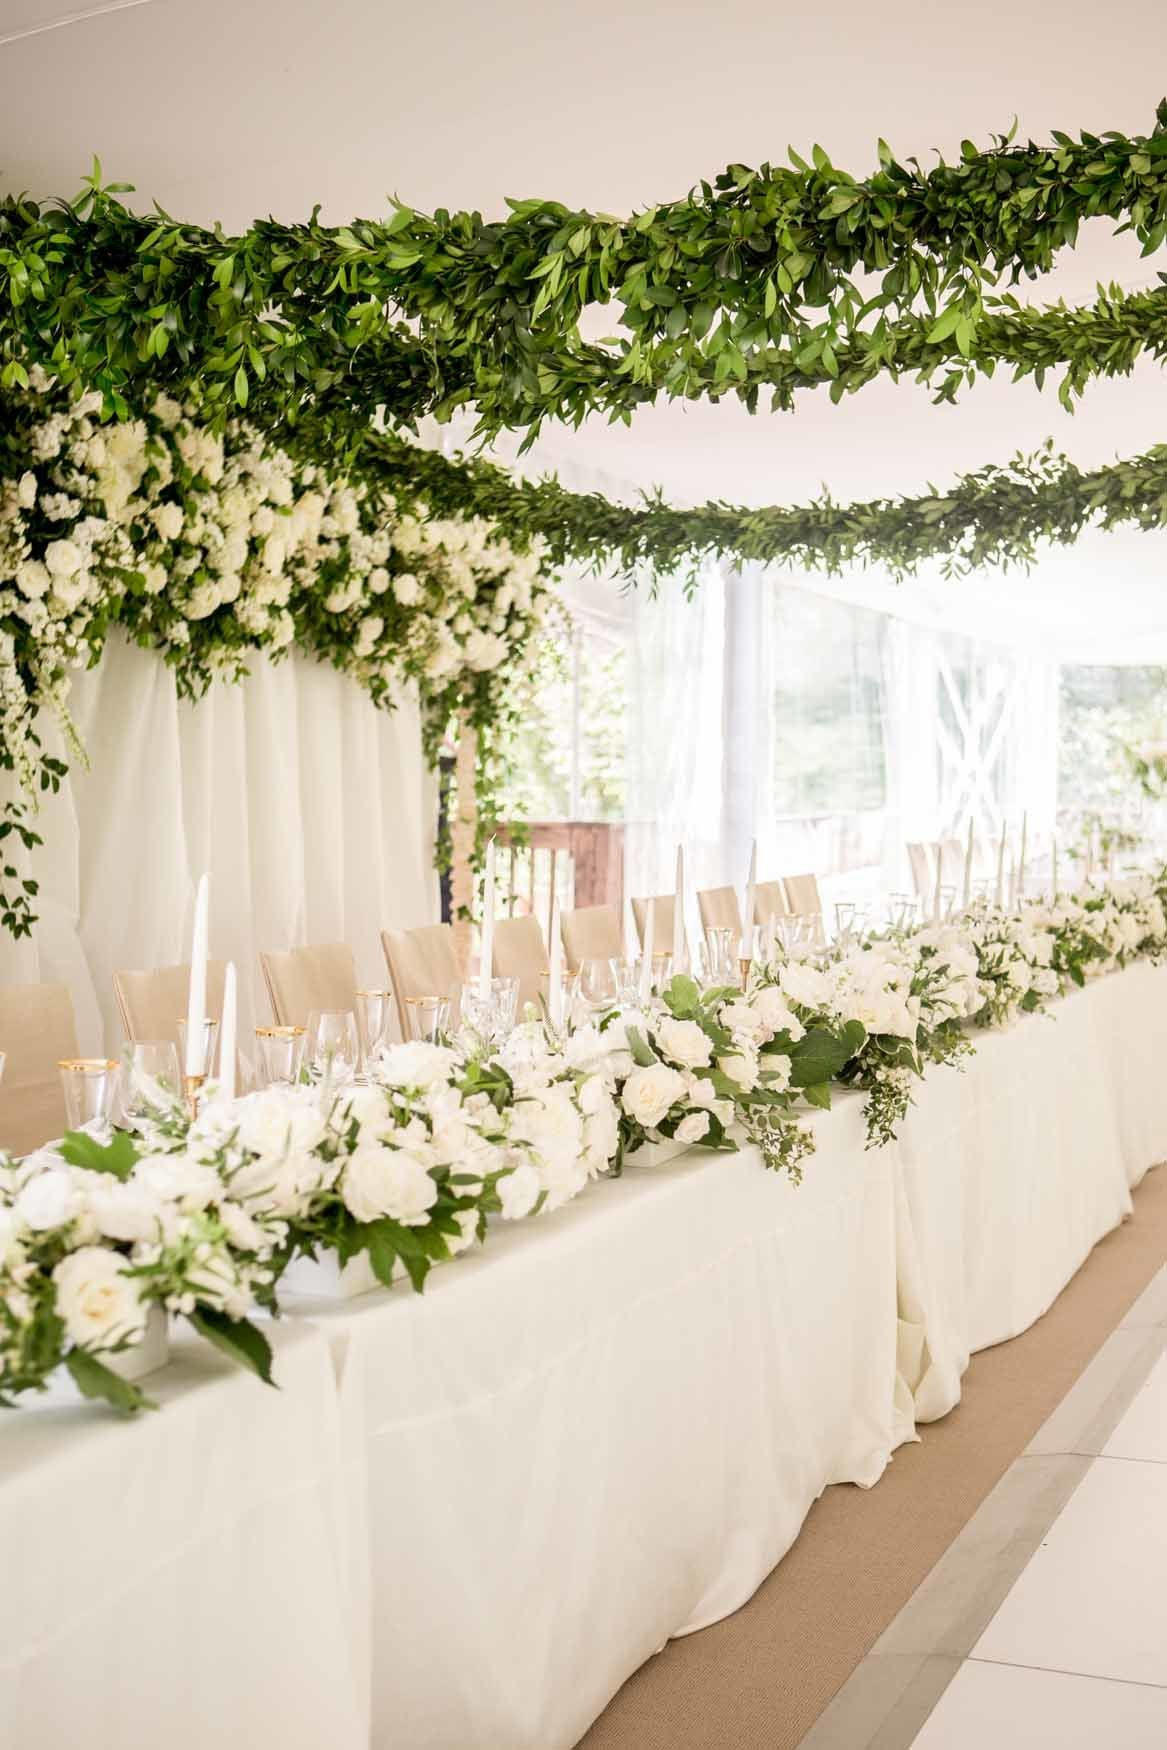 Grand tent wedding head table with white floral  and green garlands on ceiling